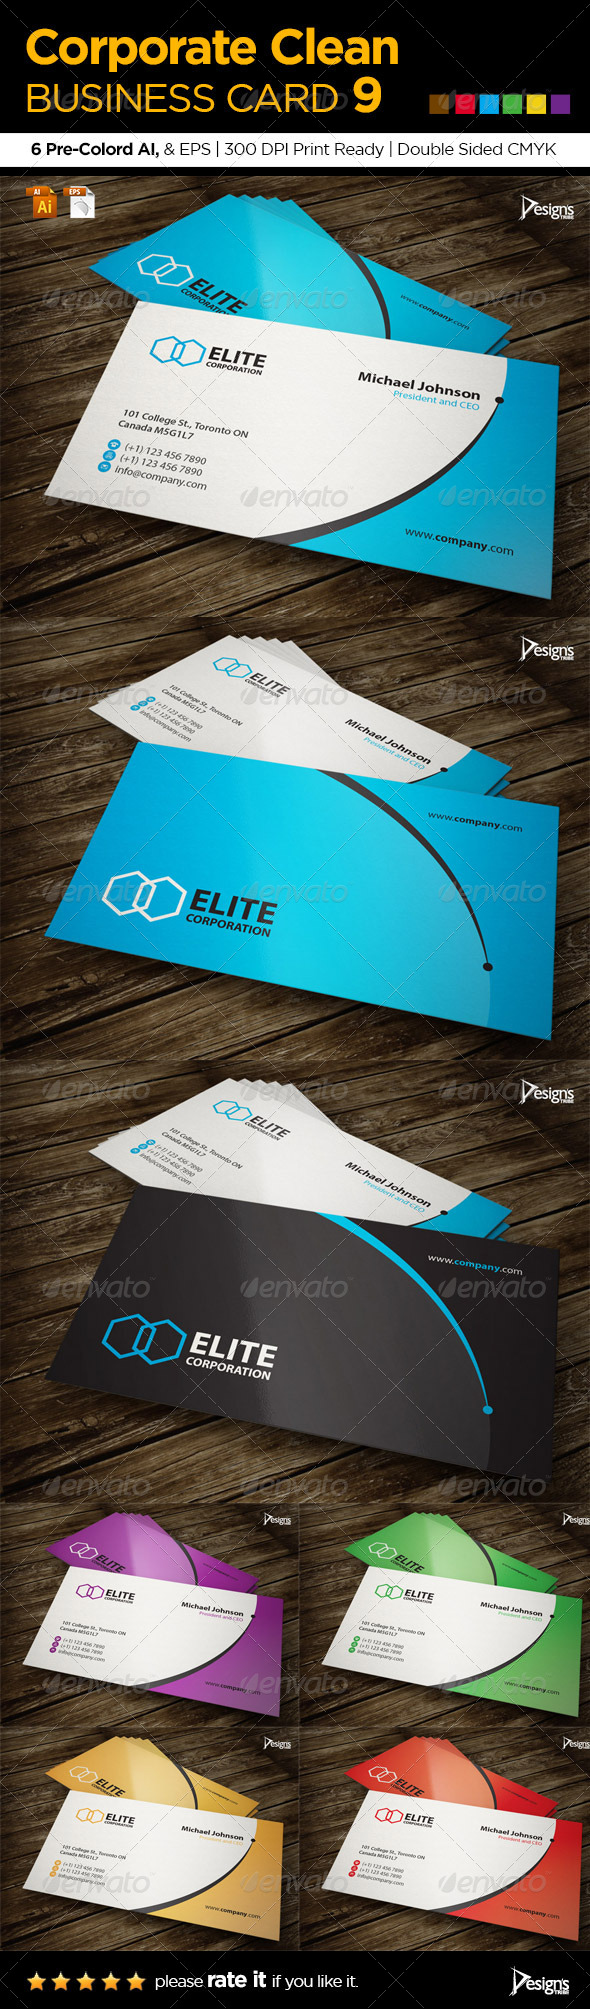 Corporate Clean Business Card 9 - Corporate Business Cards